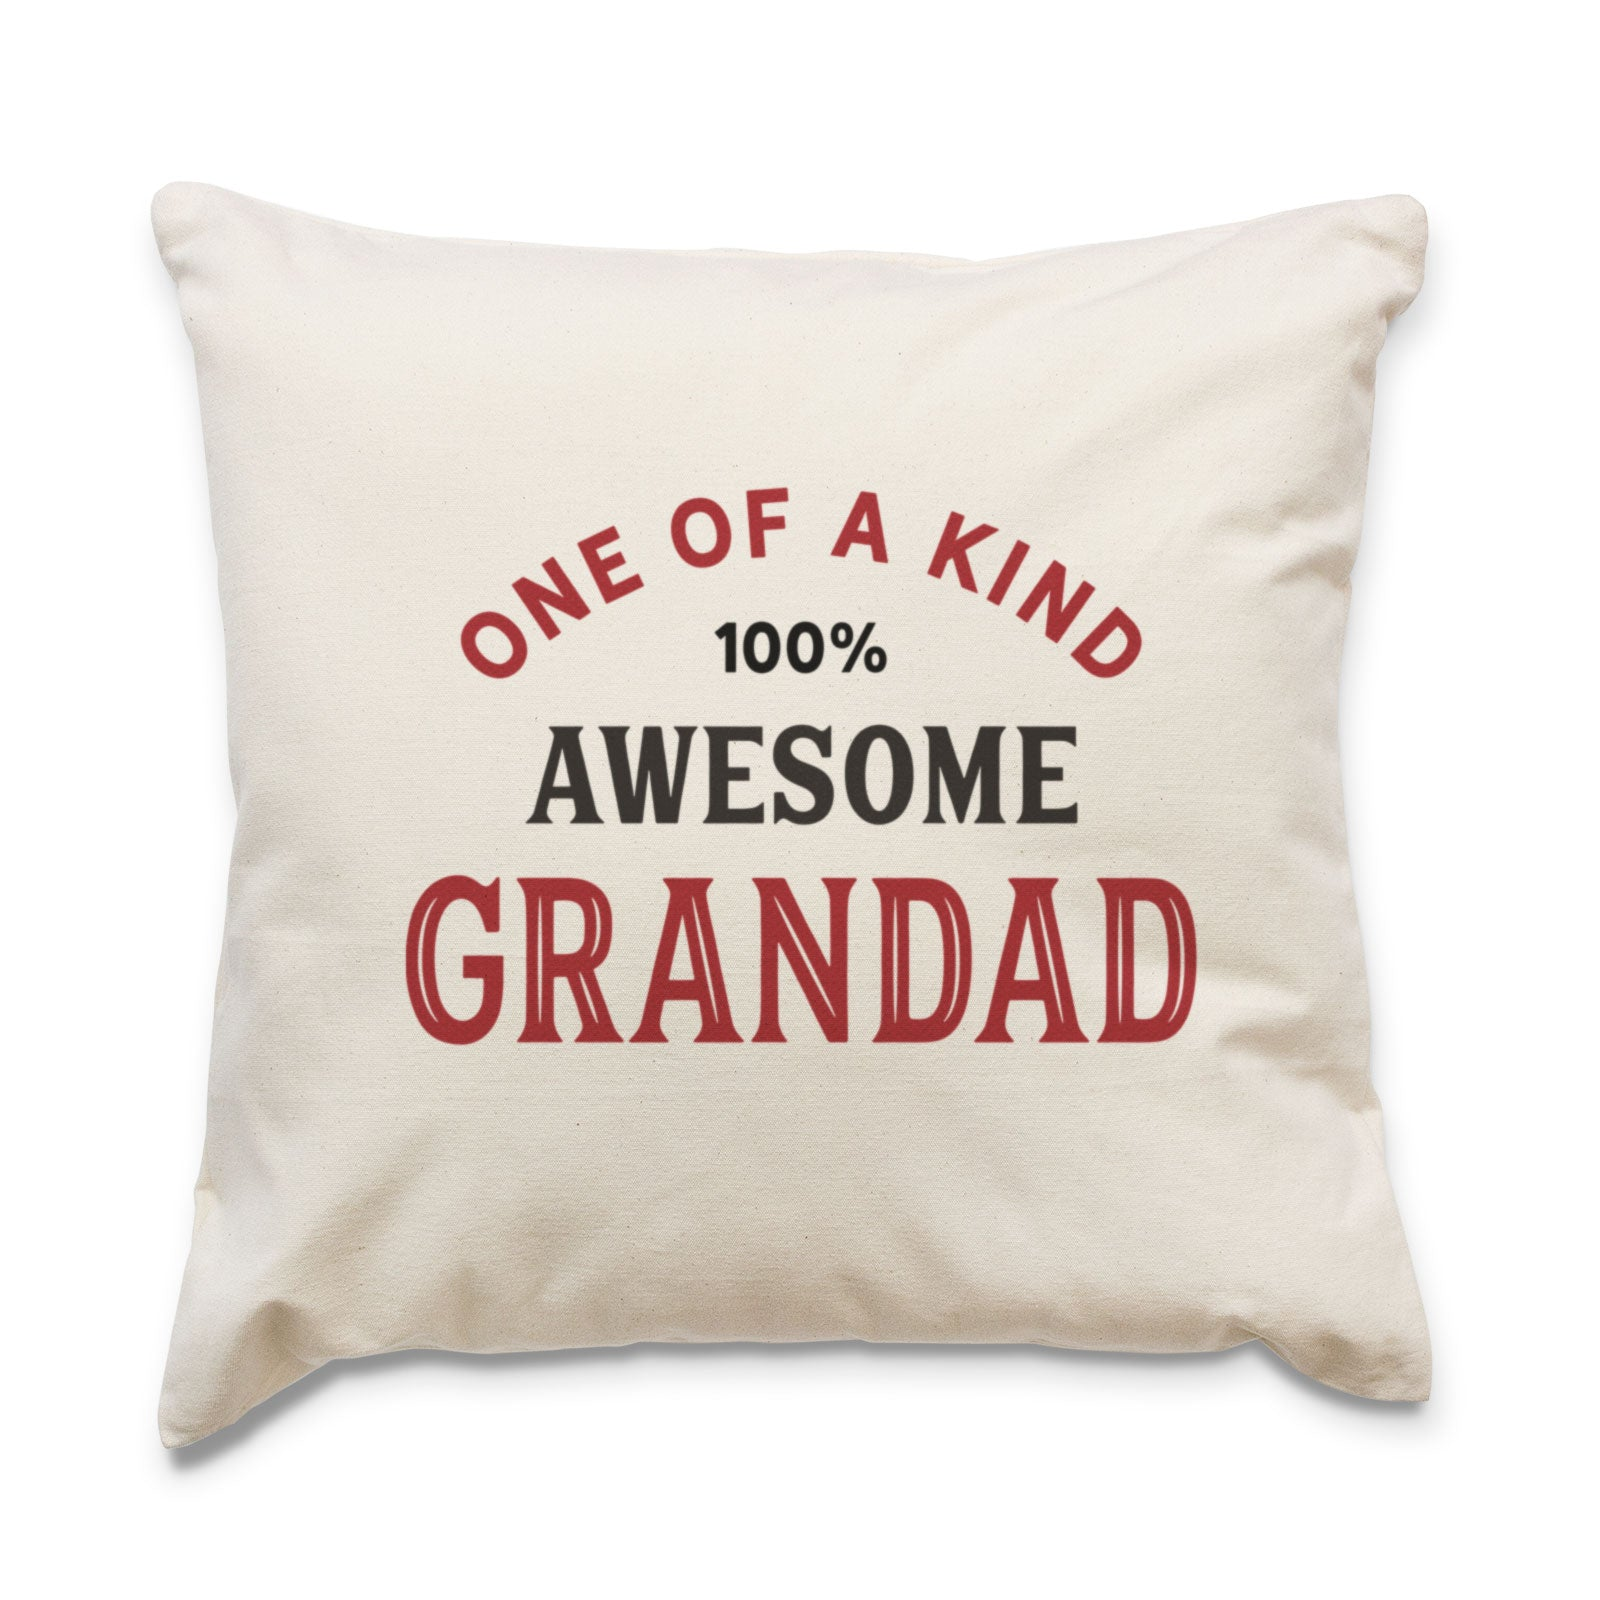 Awesome Grandad Cushion Cover